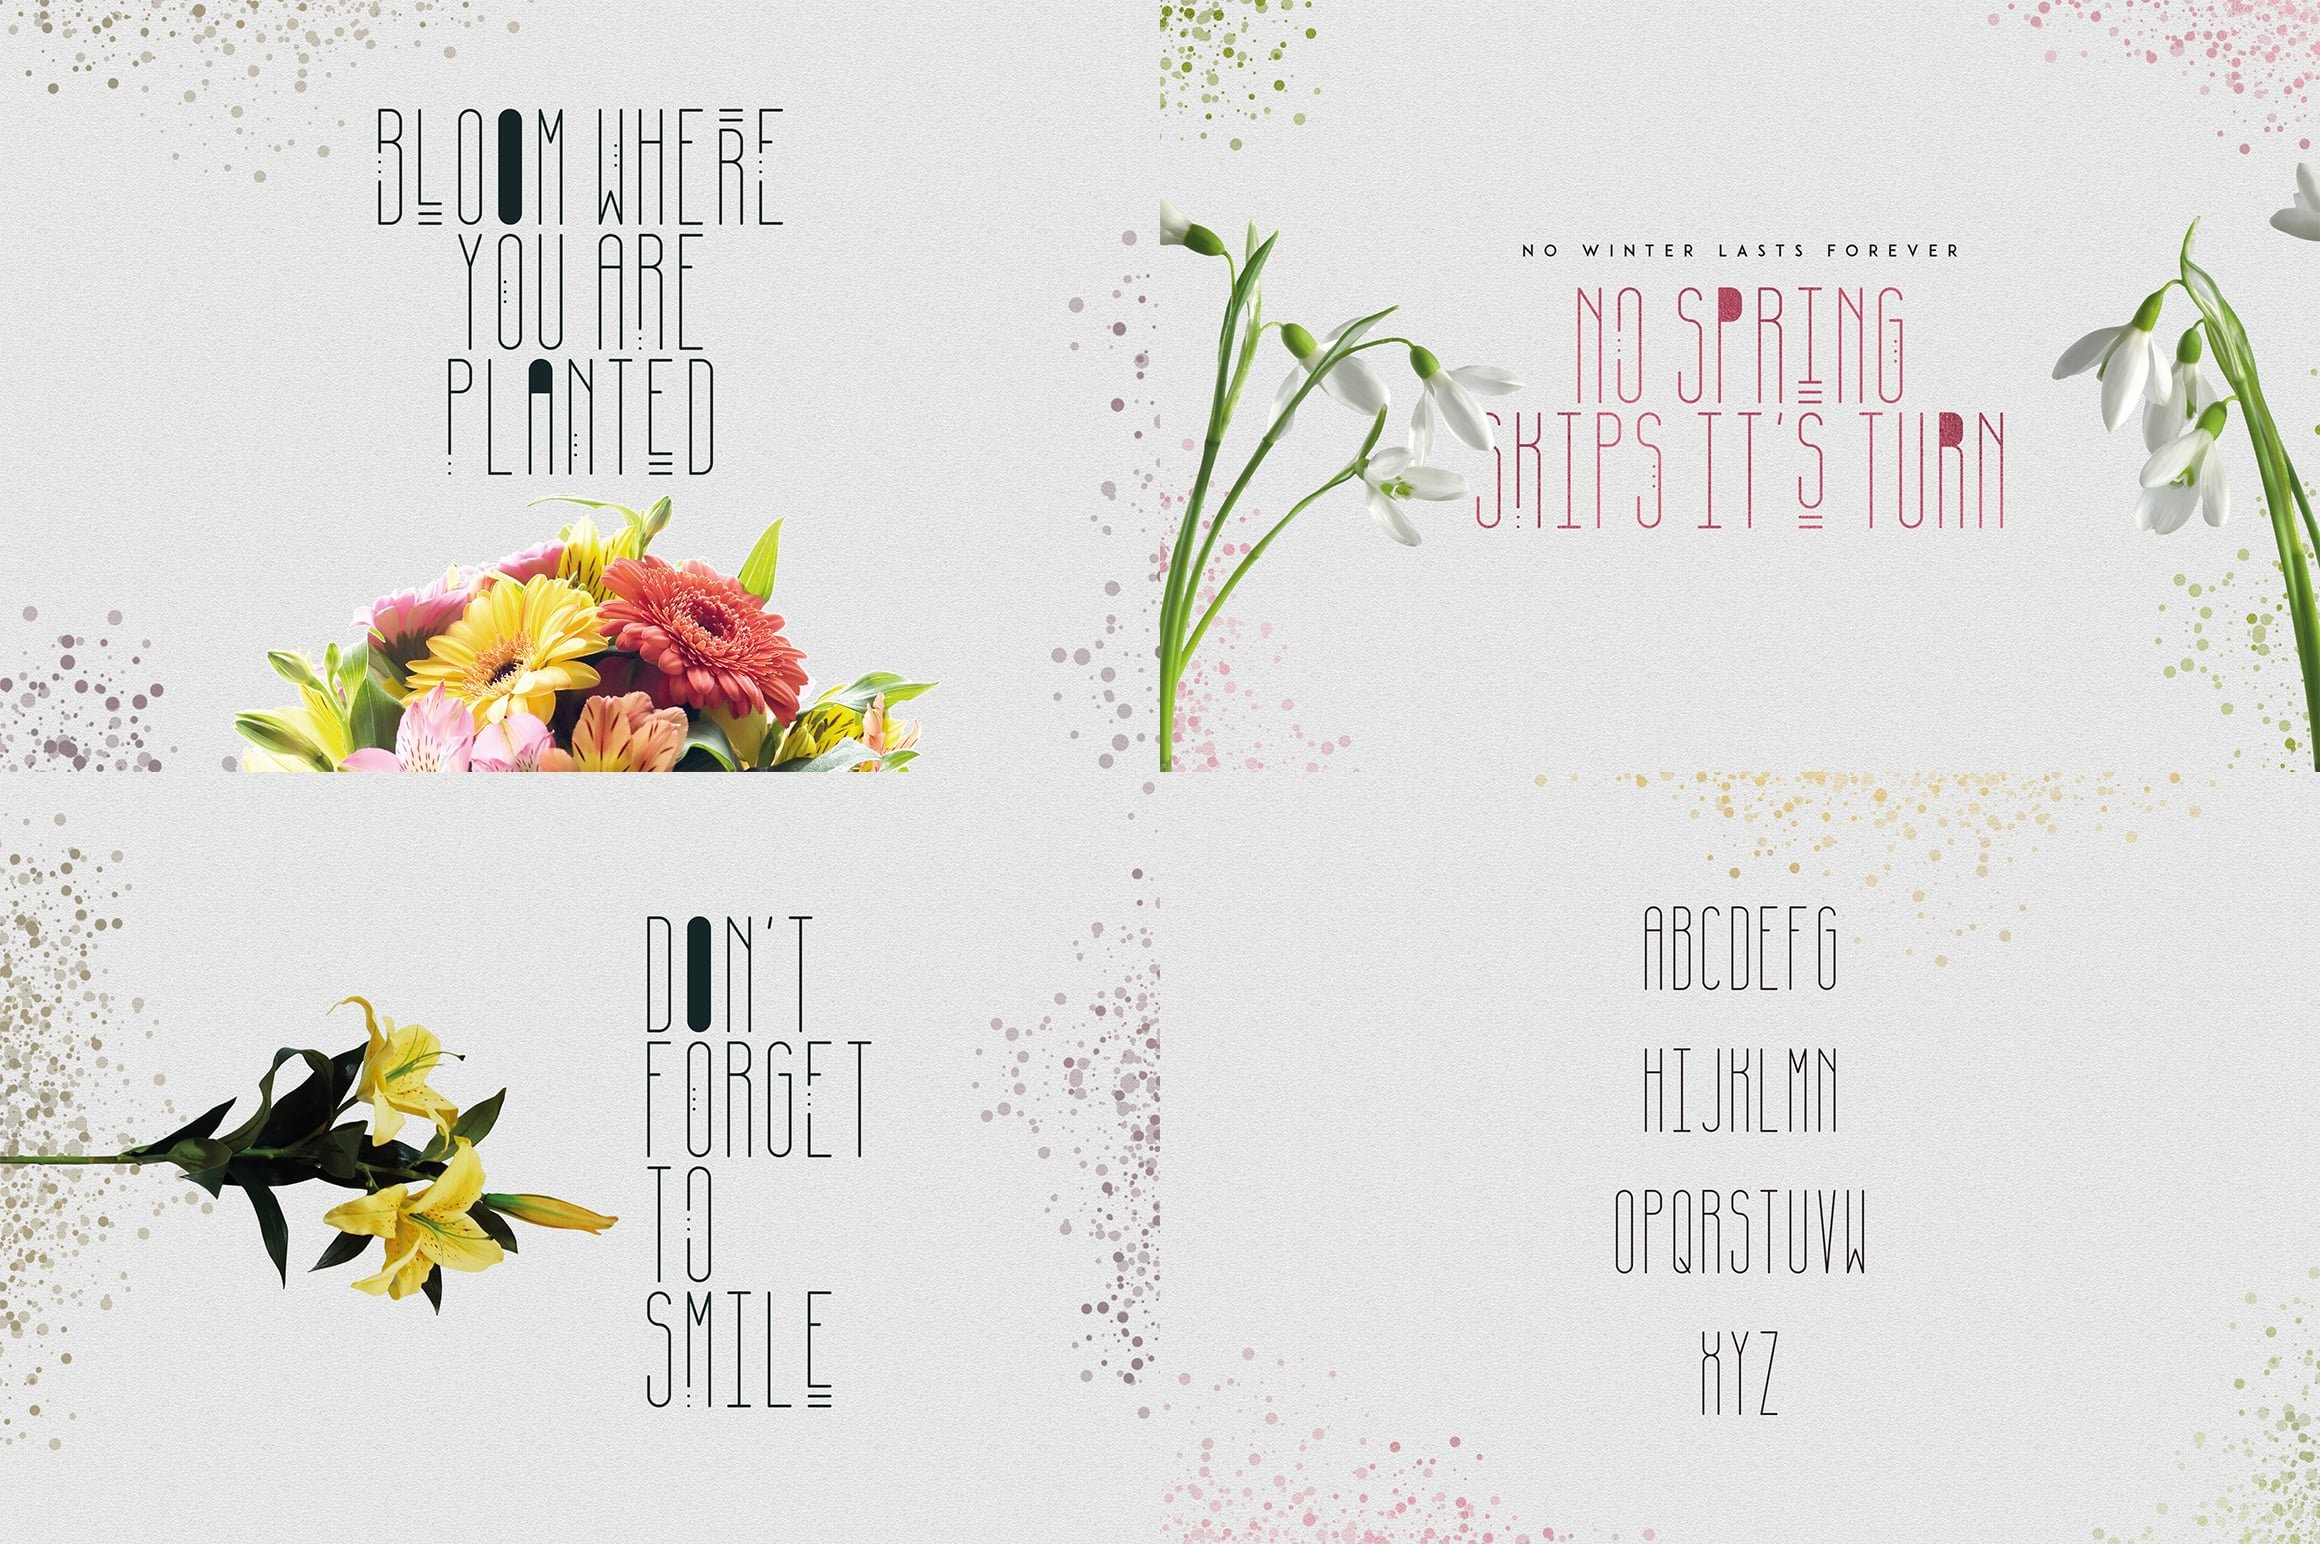 Digital Display Fonts - 85 Sans & Display Fonts Bundle - 25